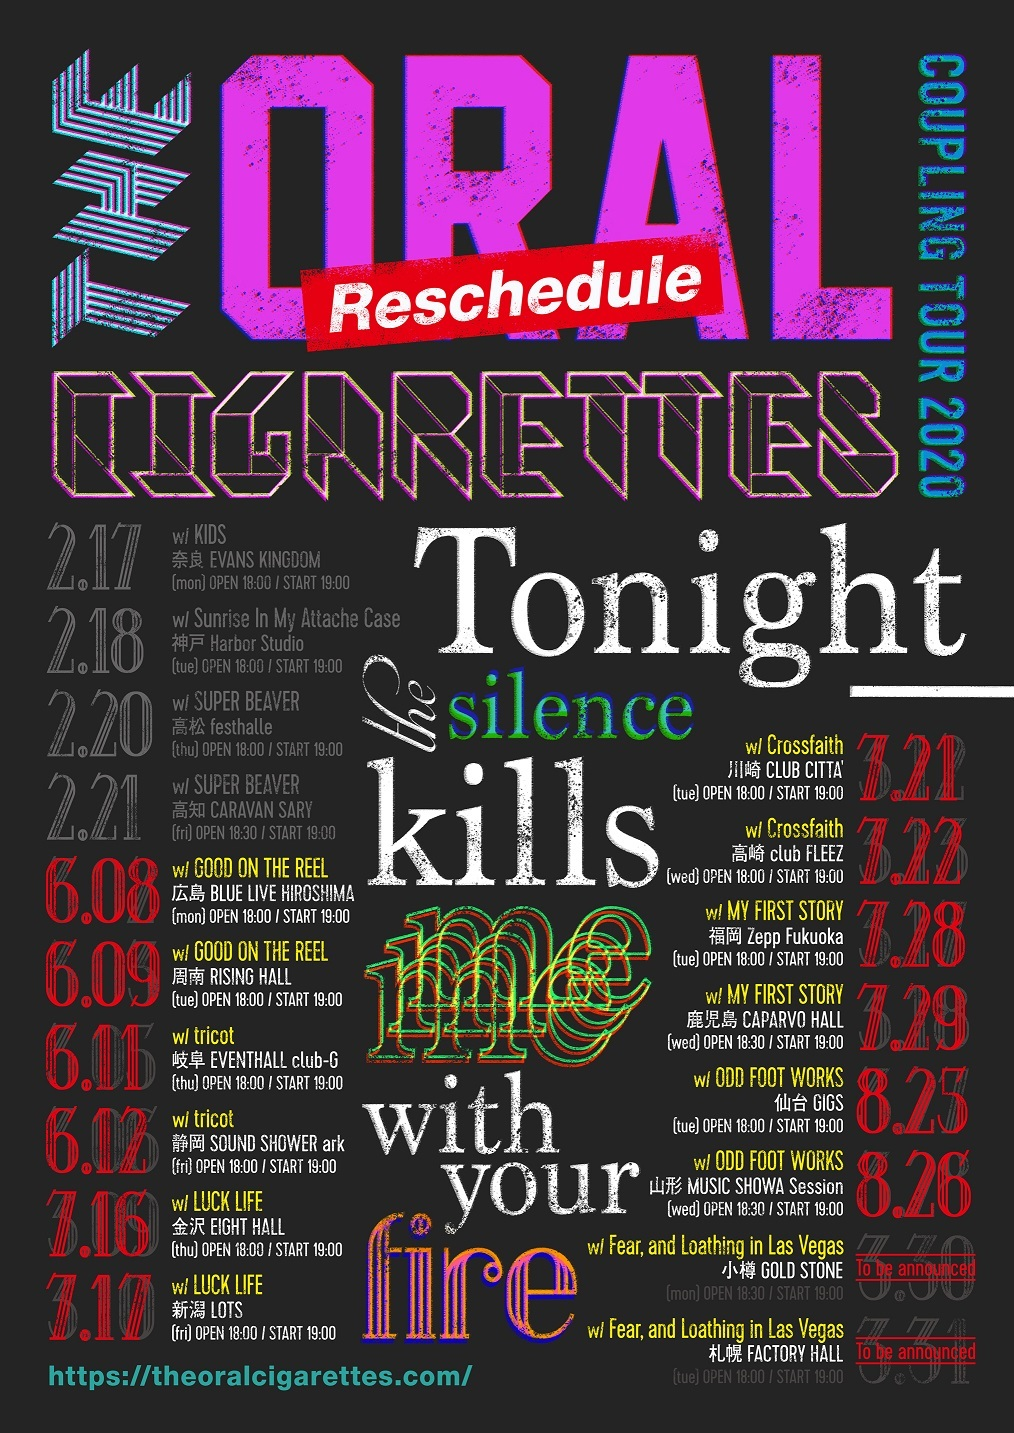 COUPLING TOUR 『Tonight the silence kills me with your fire』振替公演